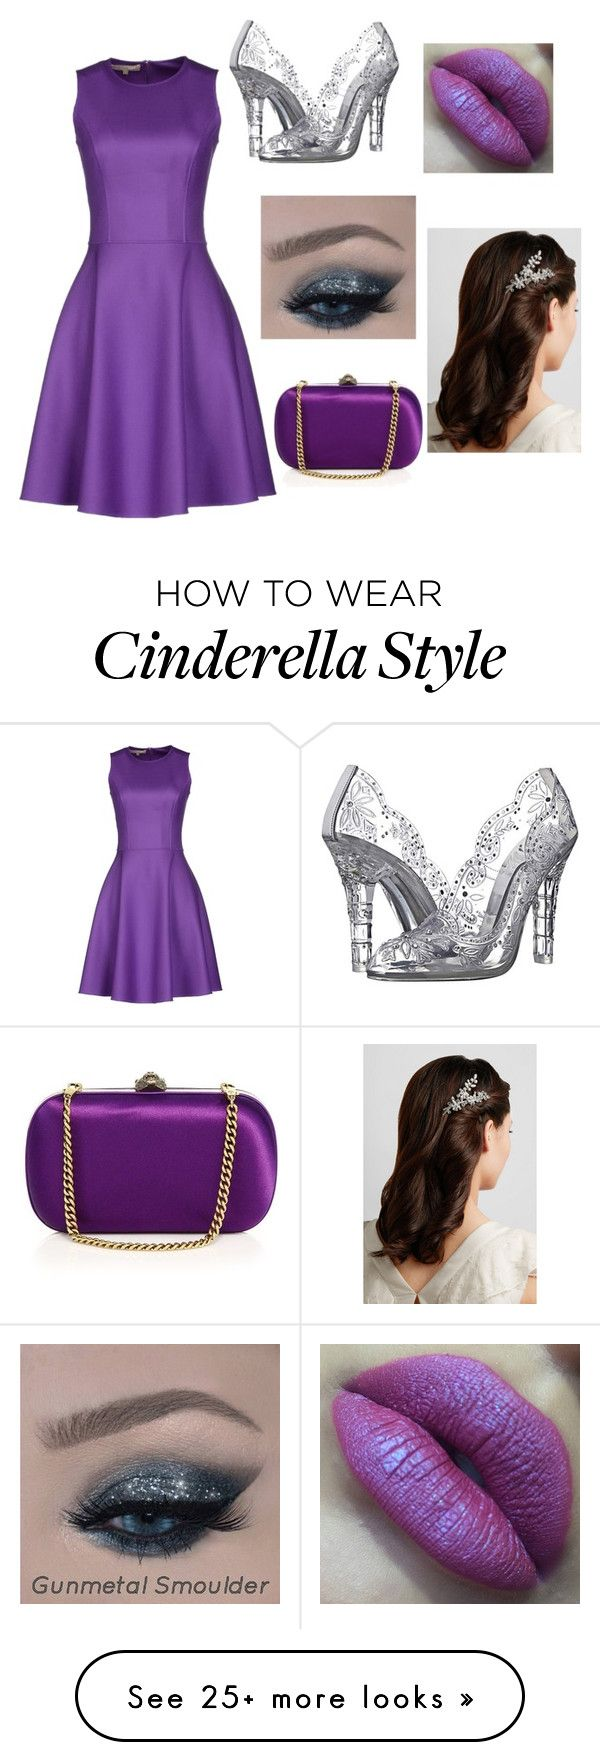 """Royalty"" by alliepug on Polyvore featuring Dolce&Gabbana, Michael Kors, Gucci and Jennifer Behr"